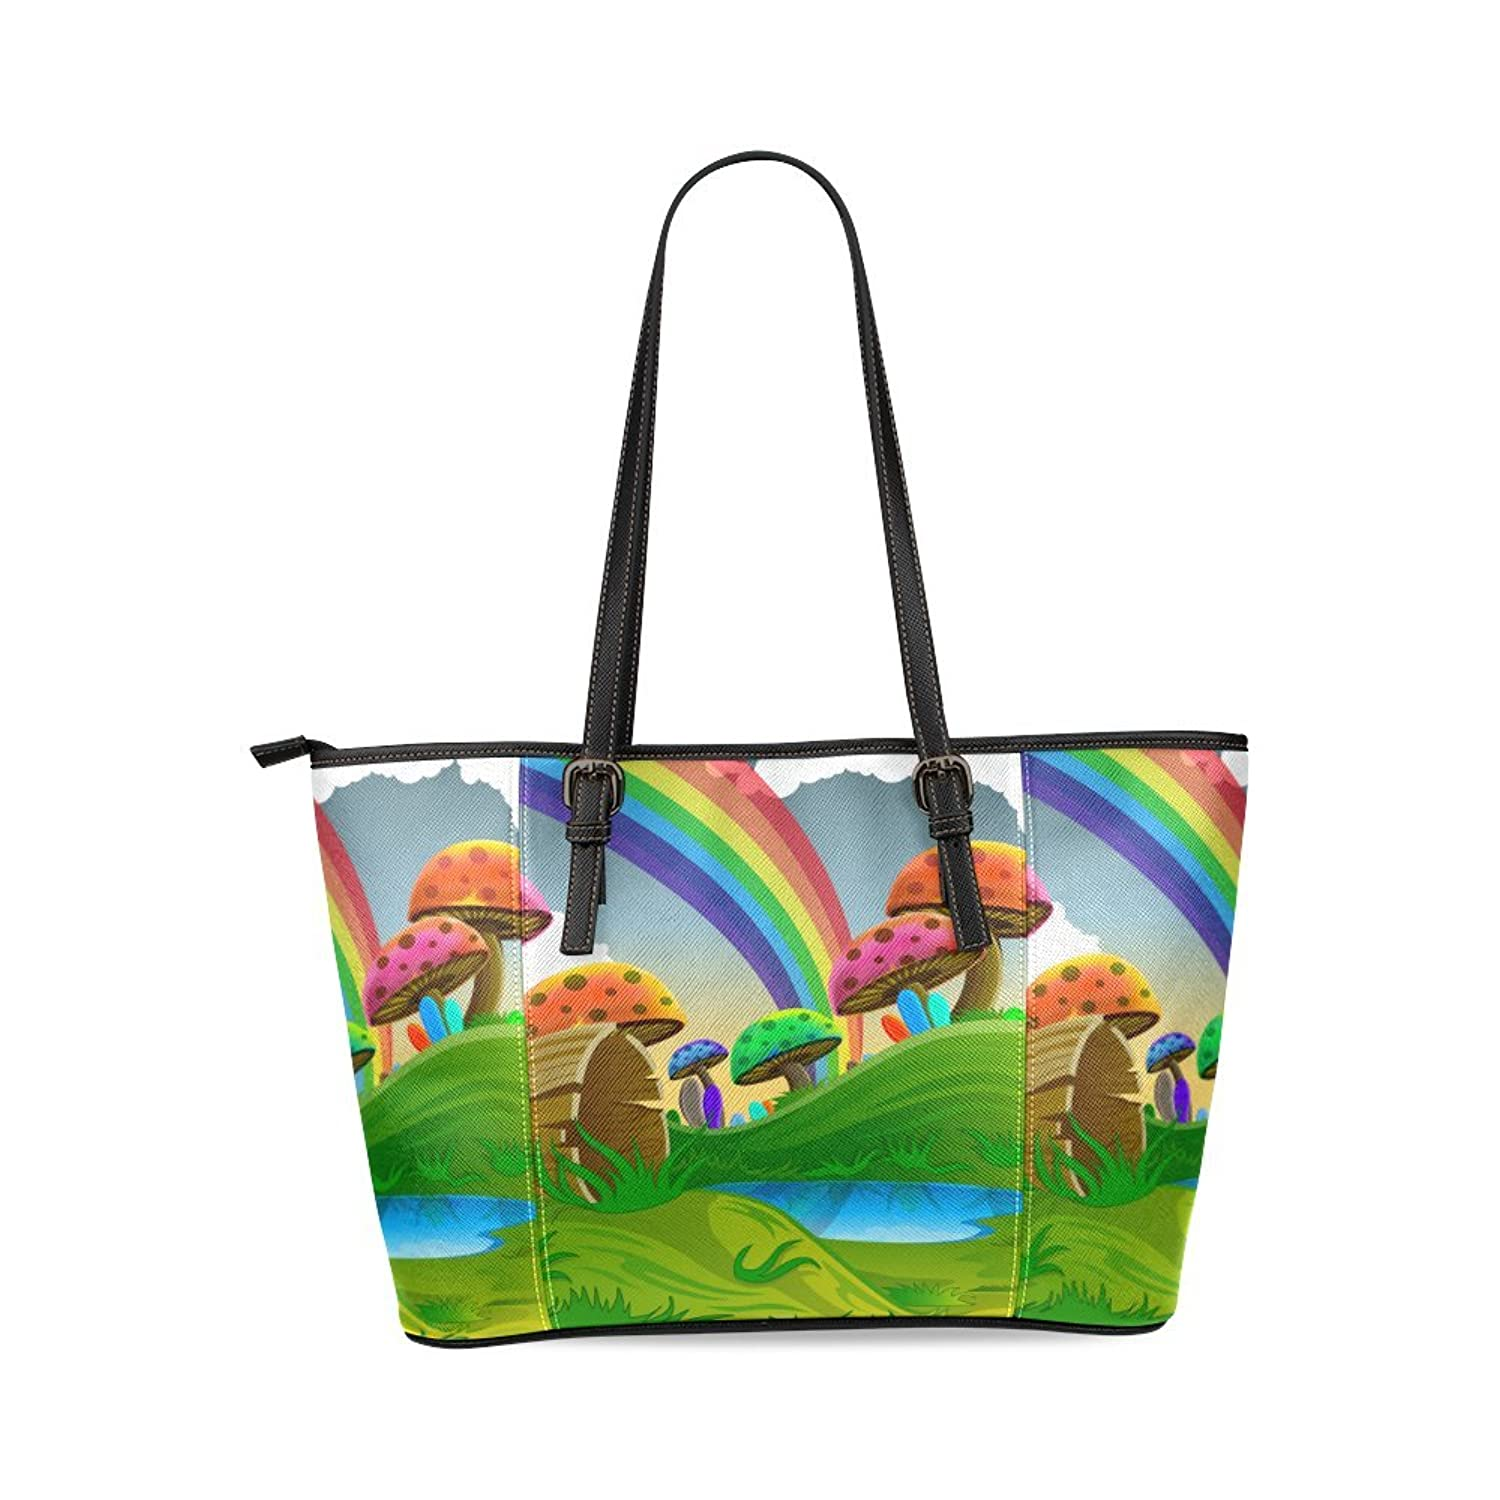 Mushroom and Rainbow Custom PU Leather Large Tote Bag/Handbag/Shoulder Bag for Fashion Women /Girls